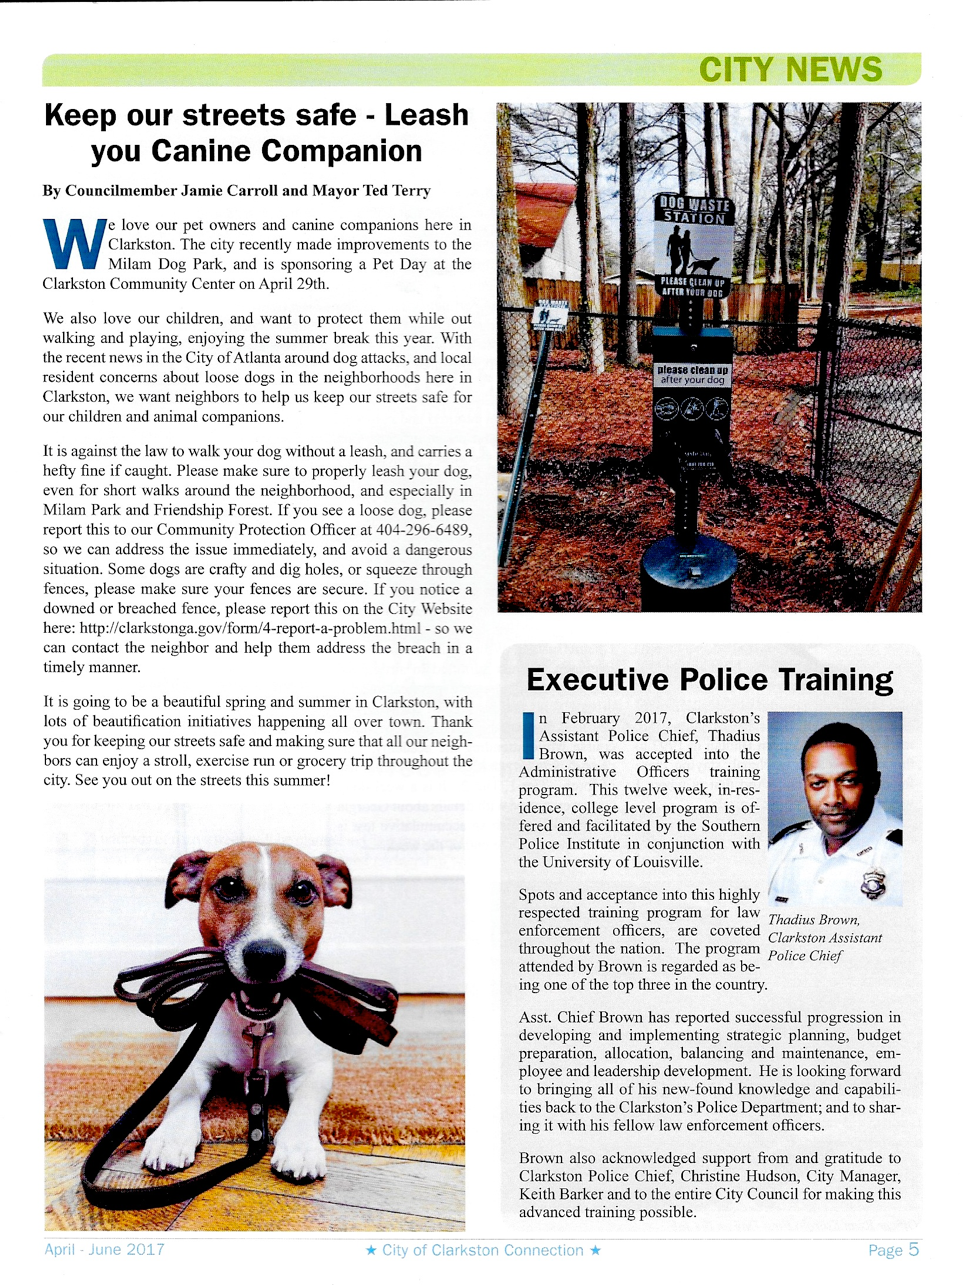 Let's keep our streets safe – Leash Your Canine Companion.png